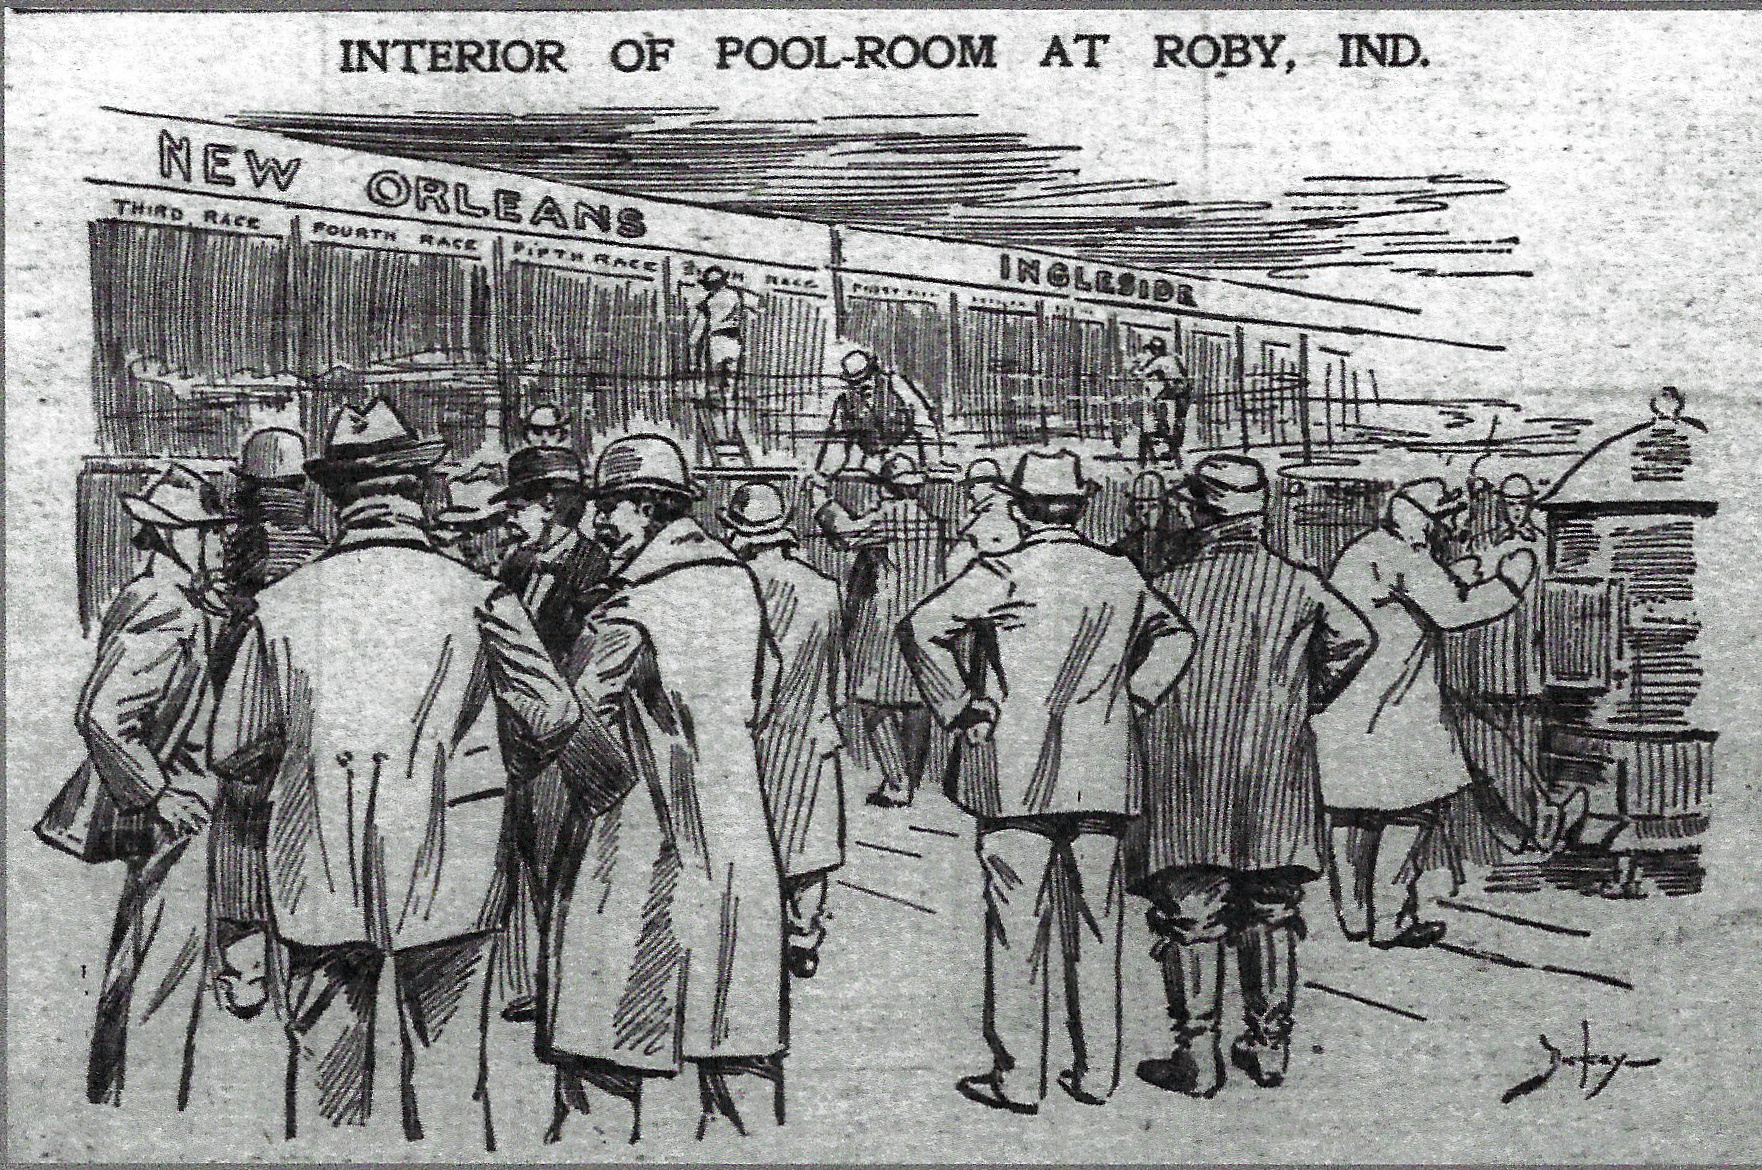 """A pool room, in the late 1800s, was a place where bookies would pool the money of gamblers for the purpose of making bets. This is what the pool room looked like in Roby, drawn by an artist for the Chicago Inter-Ocean newspaper in 1899. Near the top of the drawing are the words """"New Orleans"""" and """"Ingleside."""" Those are names of tracks where races were being held on that day. Below those names are blackboards, staffed by men writing the names of the horses and jockeys in those races, the odds for each horse, weather conditions at the track, and other information gamblers needed to make their bets. In the language of the time, betting on races held outside your own track was called betting on """"foreign"""" races. Today it is called """"off-track"""" betting. Notice the furnace on the right side of the image, providing heat for the gamblers, since the races at Roby were held in the winter months."""